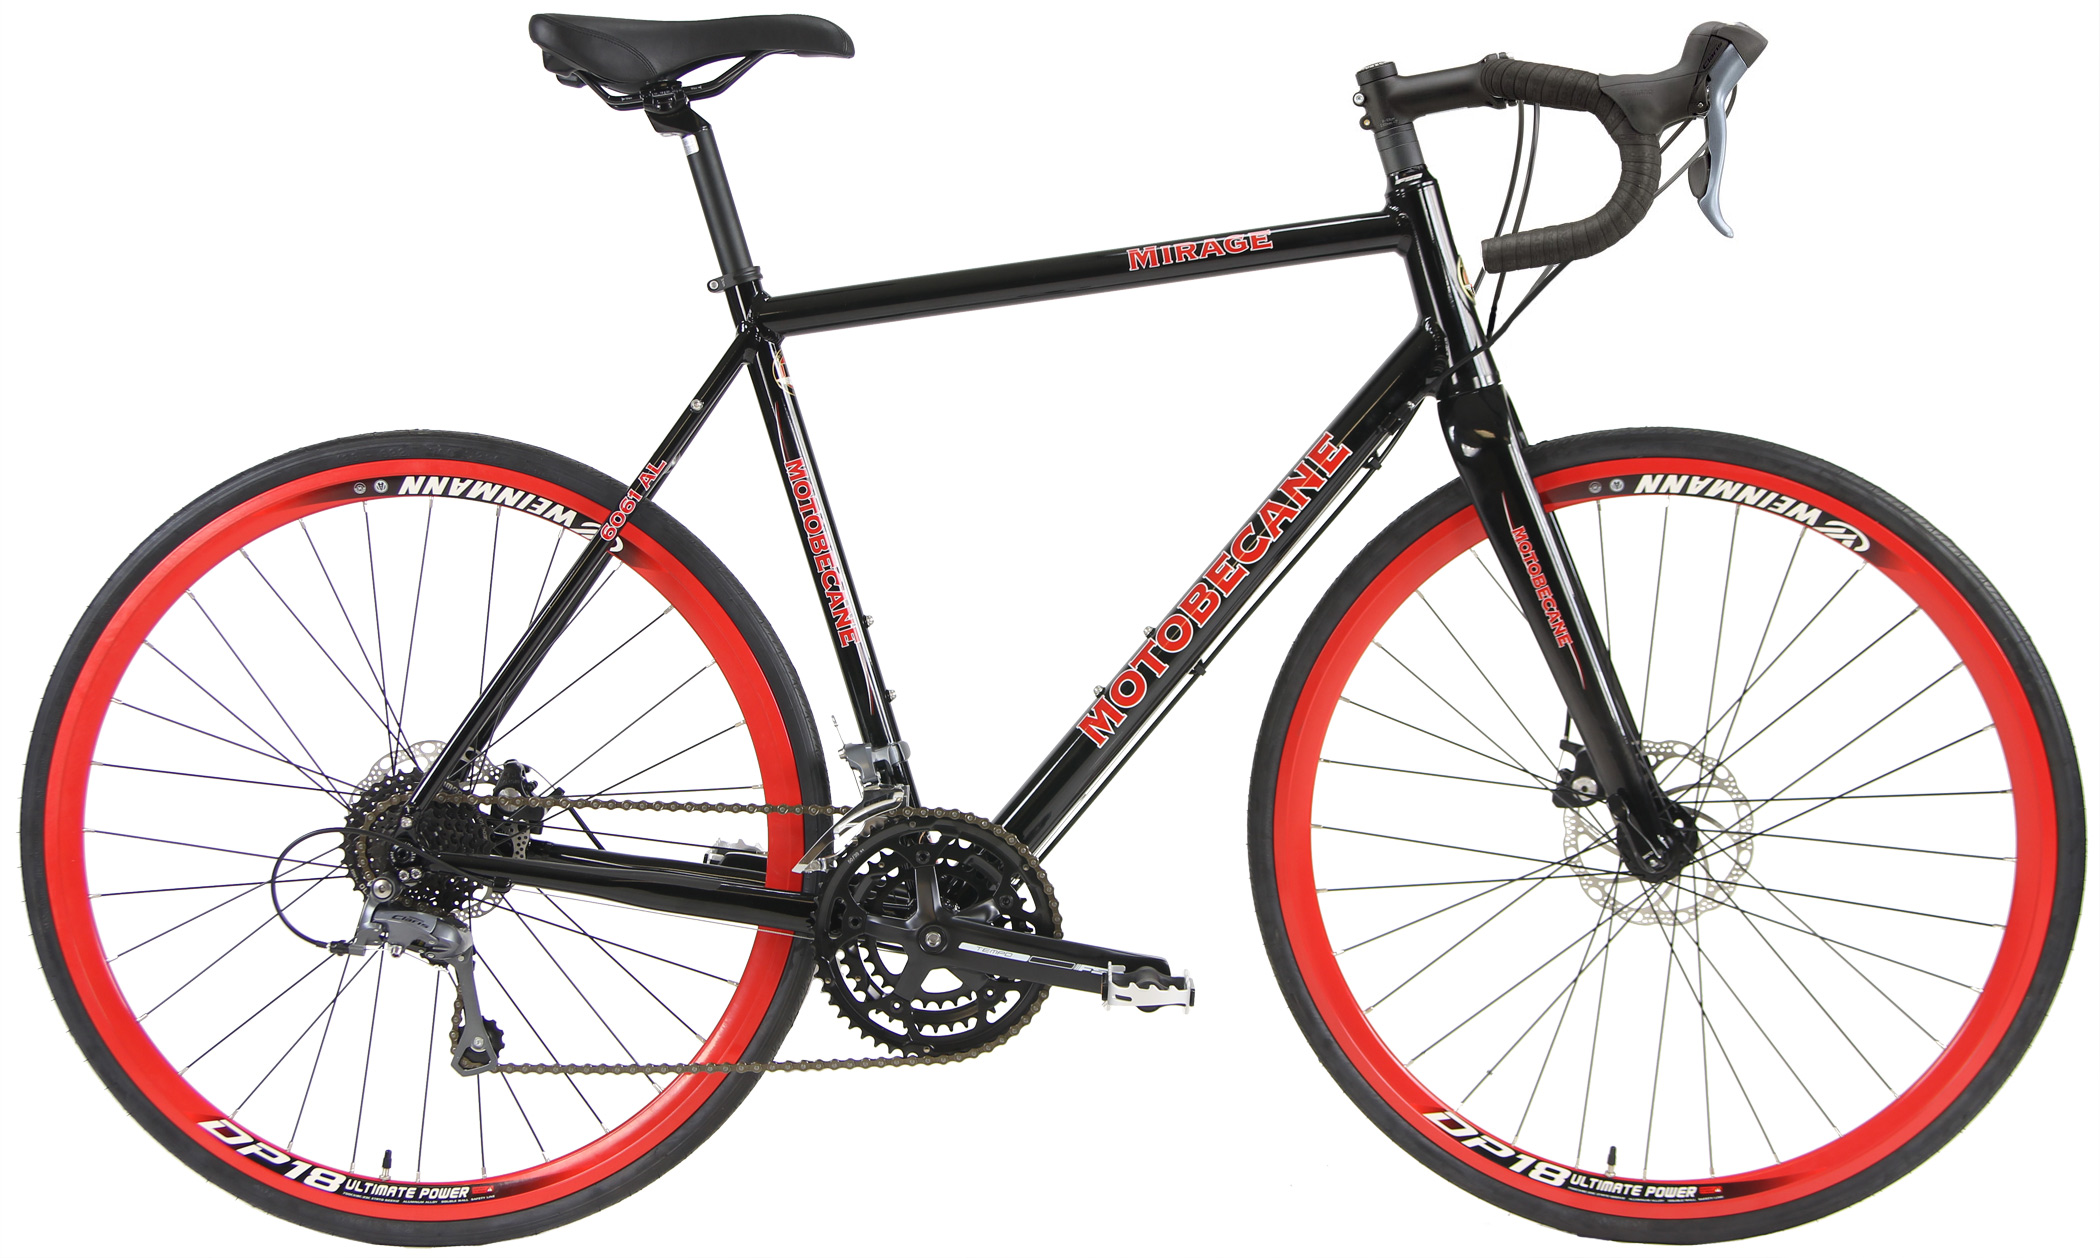 SUPER MIRAGE - ALLOY GRAVEL BIKE w/ DISC BRAKES